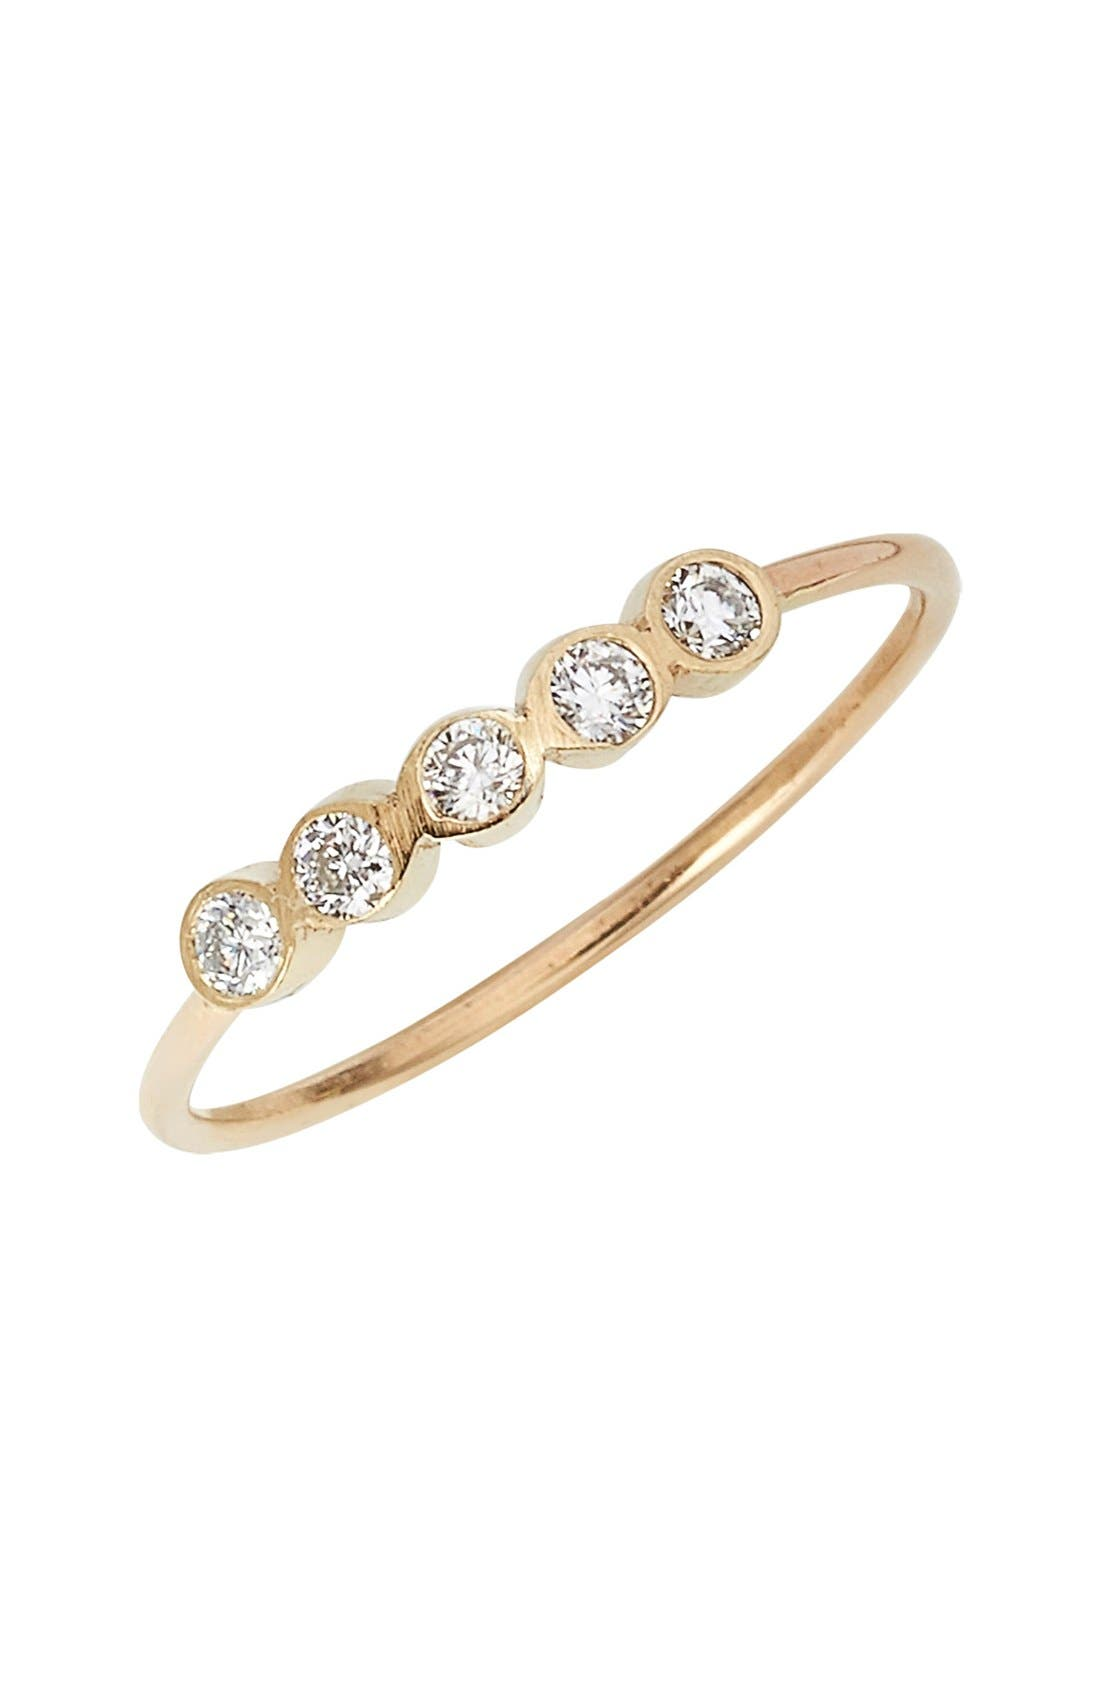 Zoë Chicco Diamond Bezel Ring